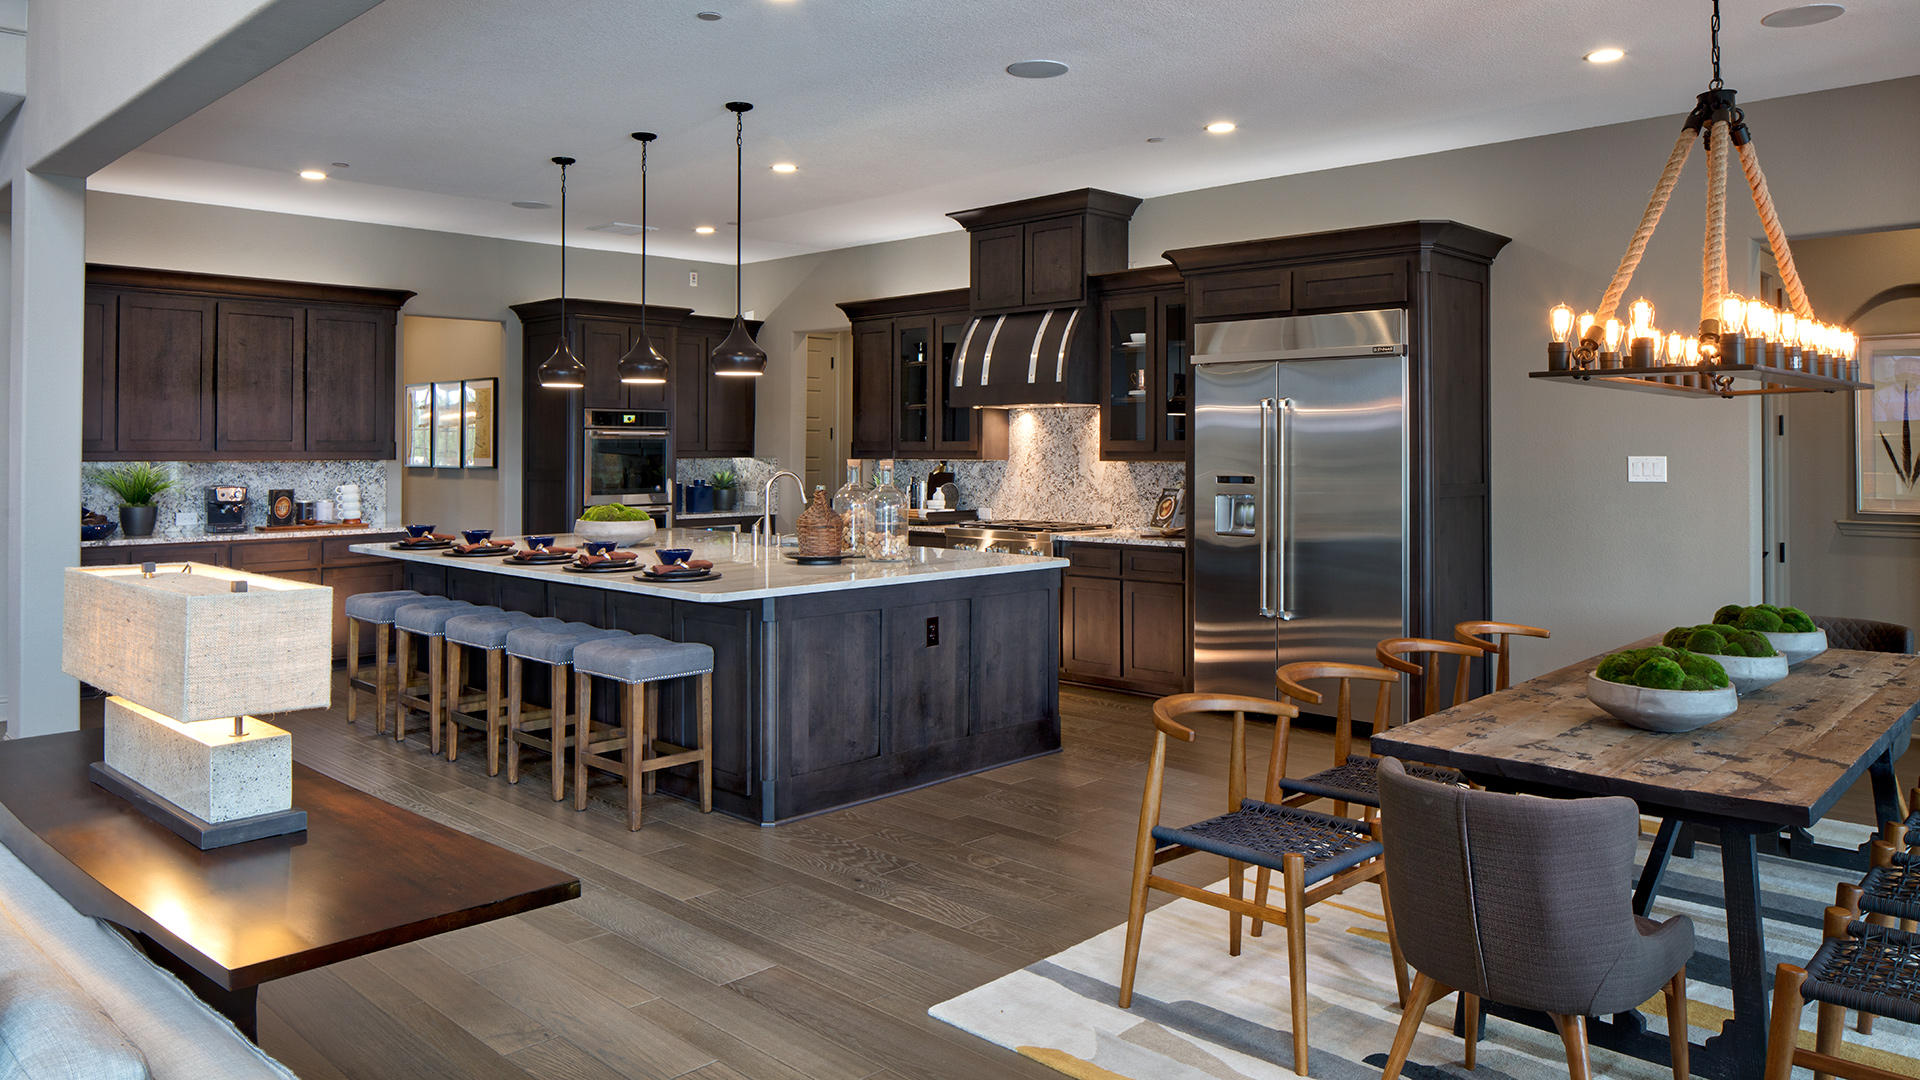 Home Design: Katy TX New Homes For Sale